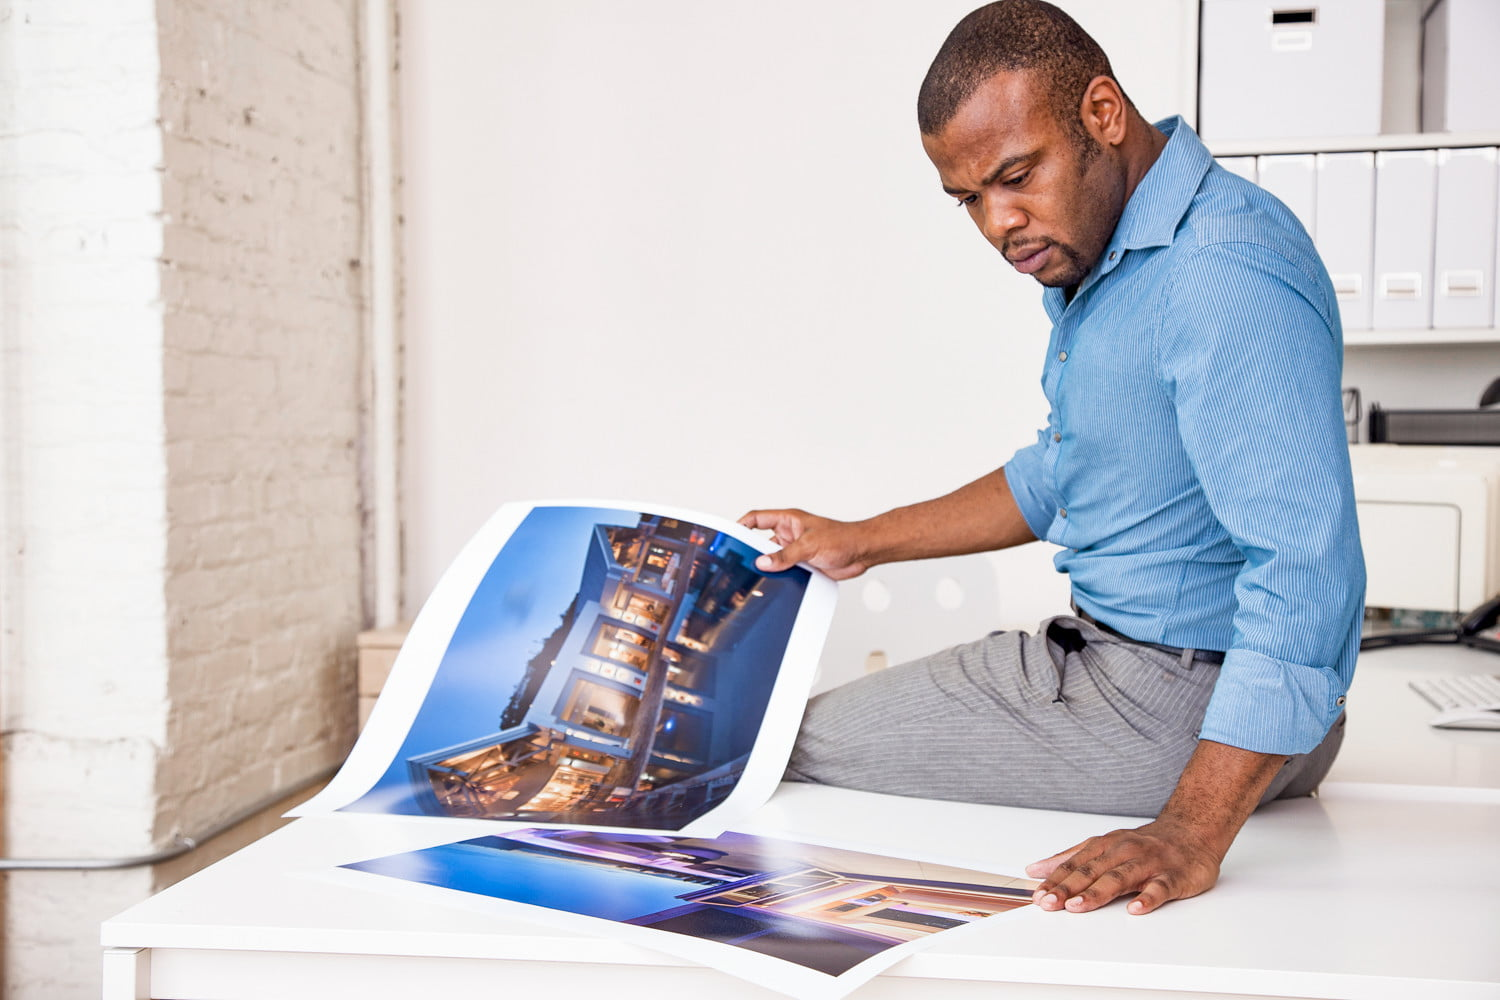 How to Print Digital Photos To Perfection Every Time